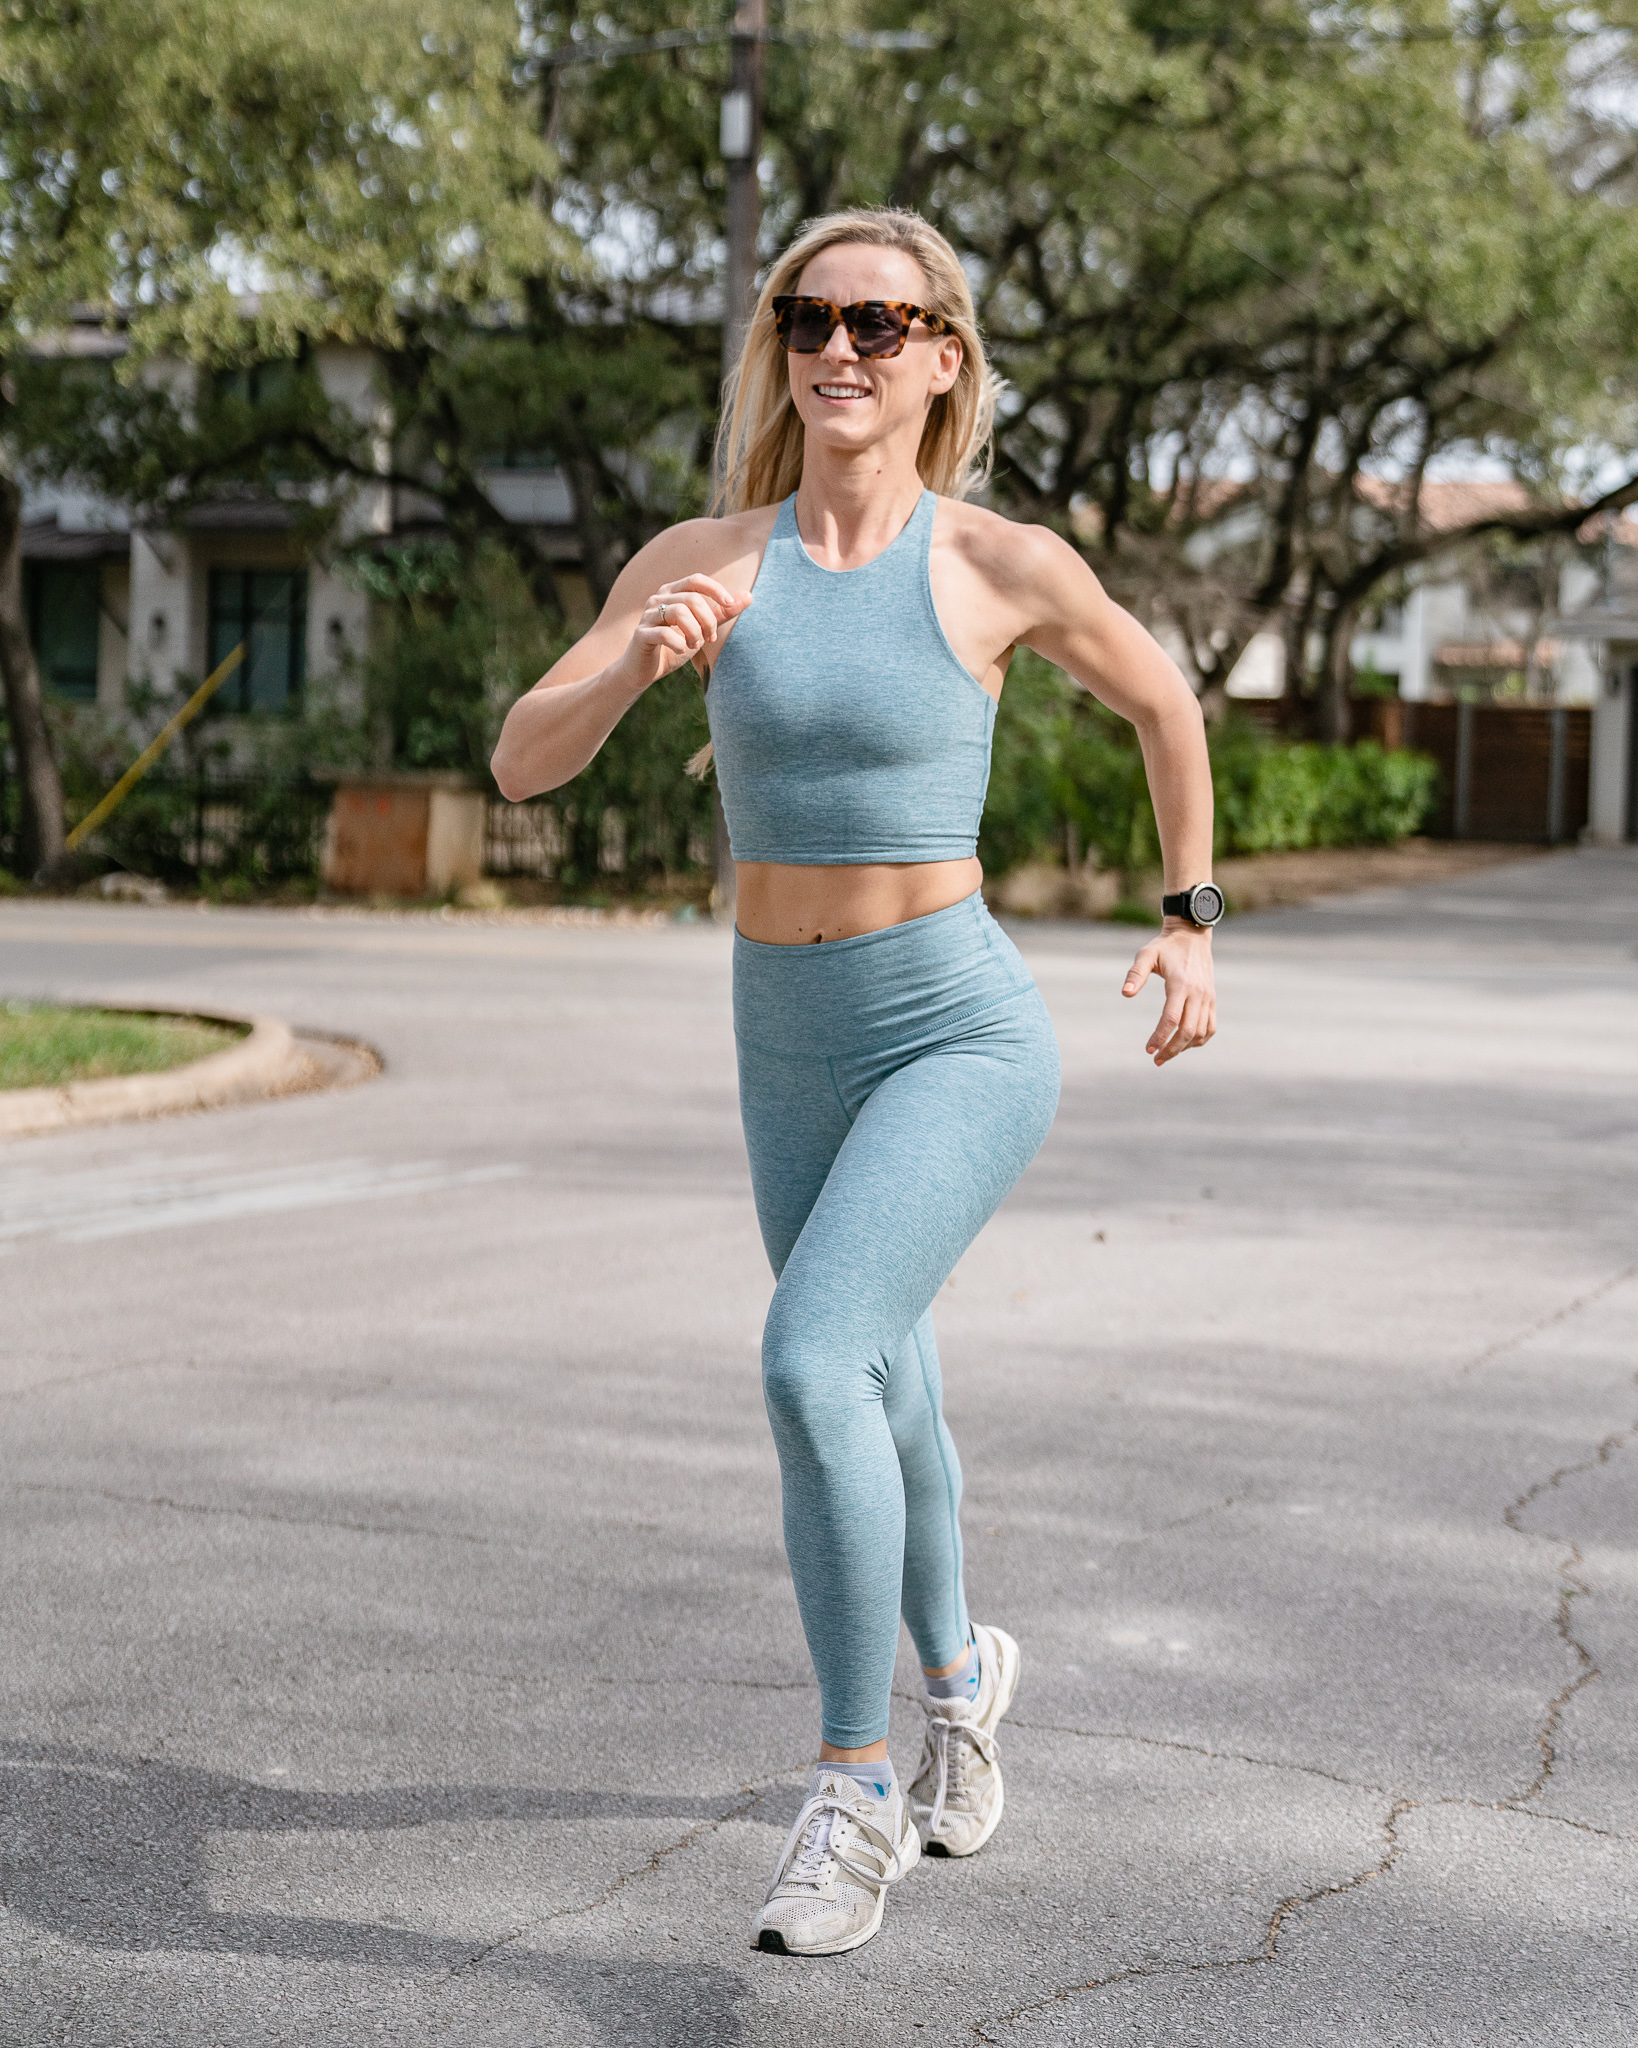 An Extra 25% off Sale Carbon38 Athleisure with Code: SUMMERFOLLY